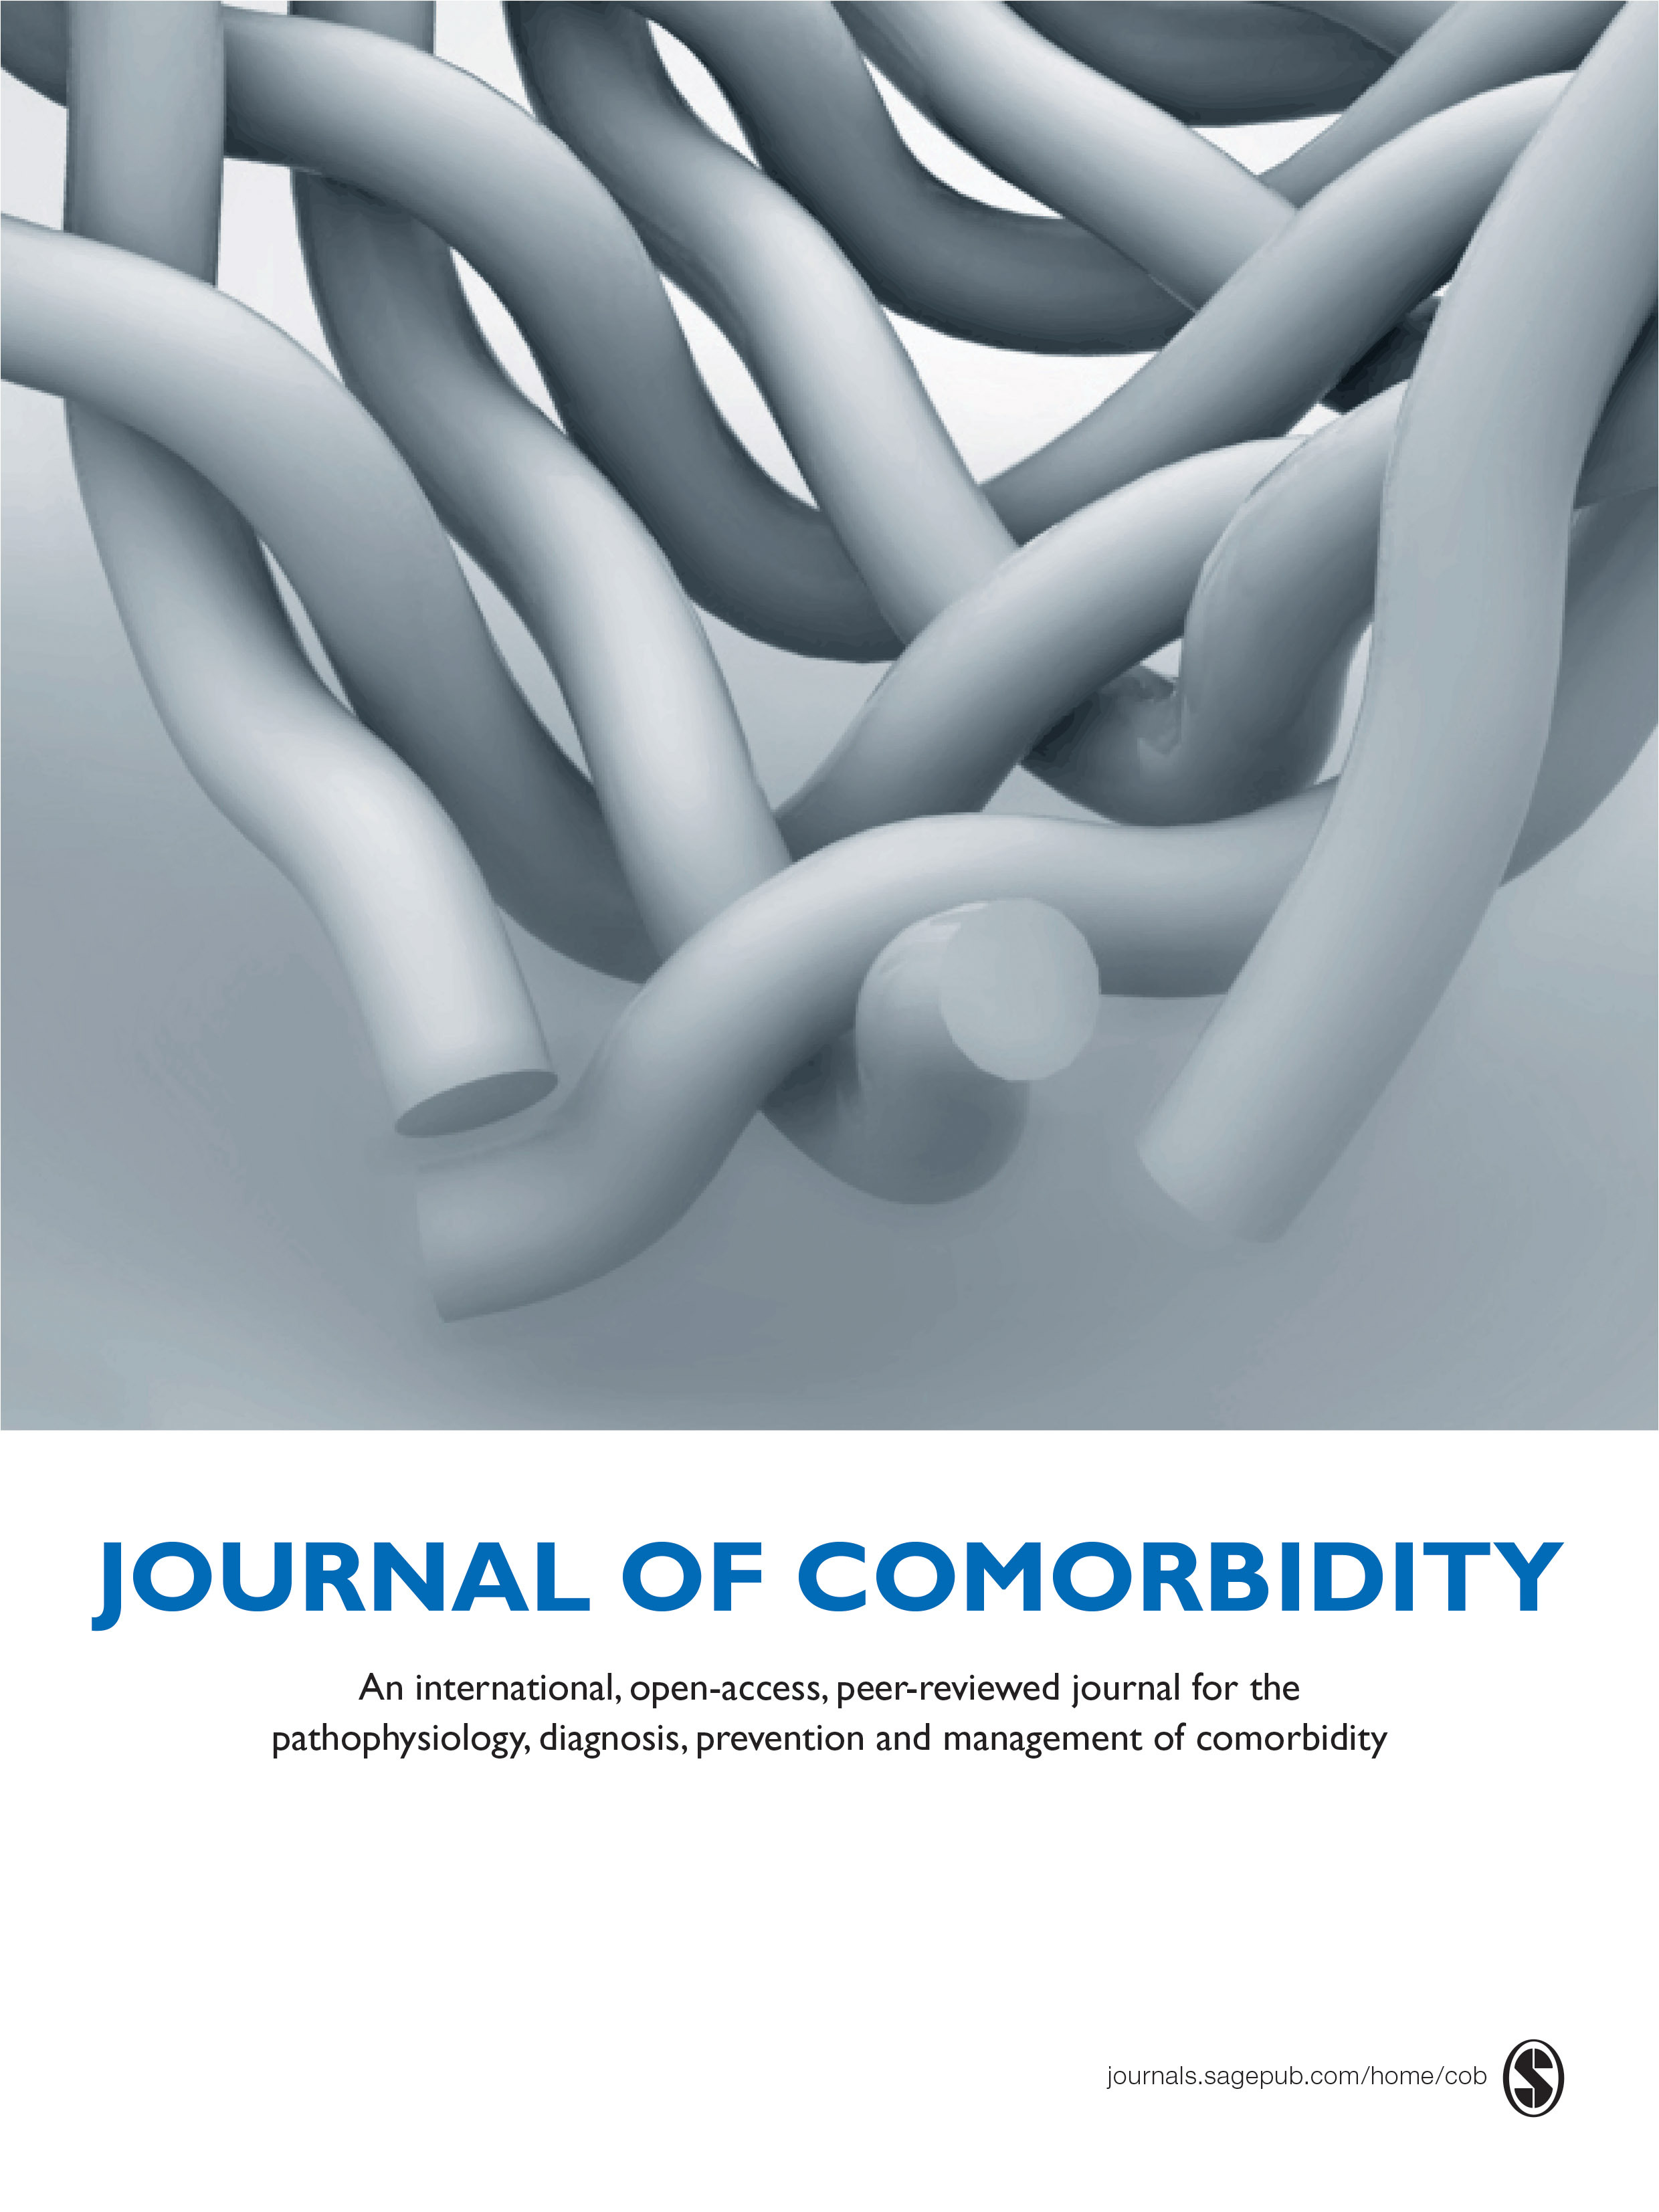 Journal of Comorbidity